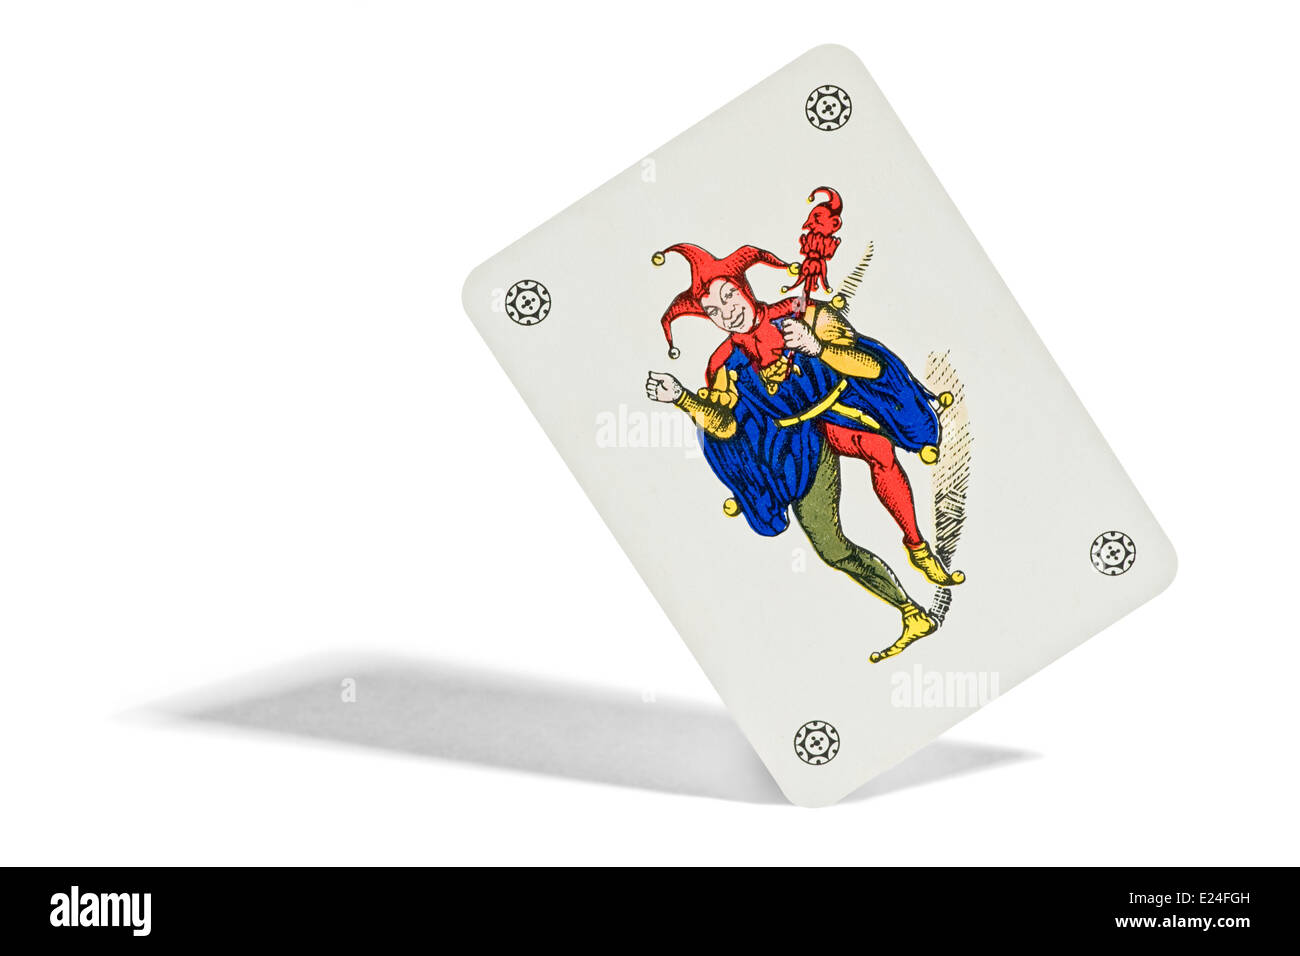 Joker playing card - Stock Image